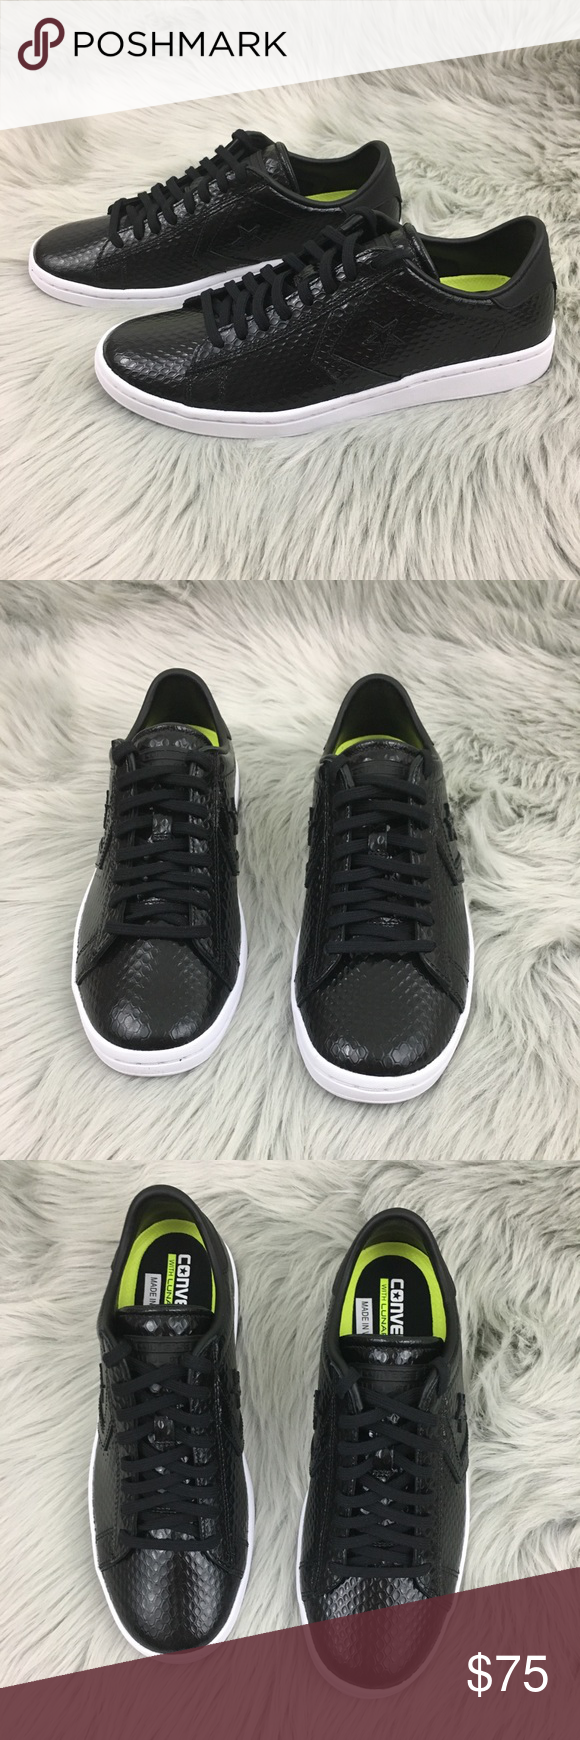 af5de072a948 New converse pro leather lp scale leather low top nwt